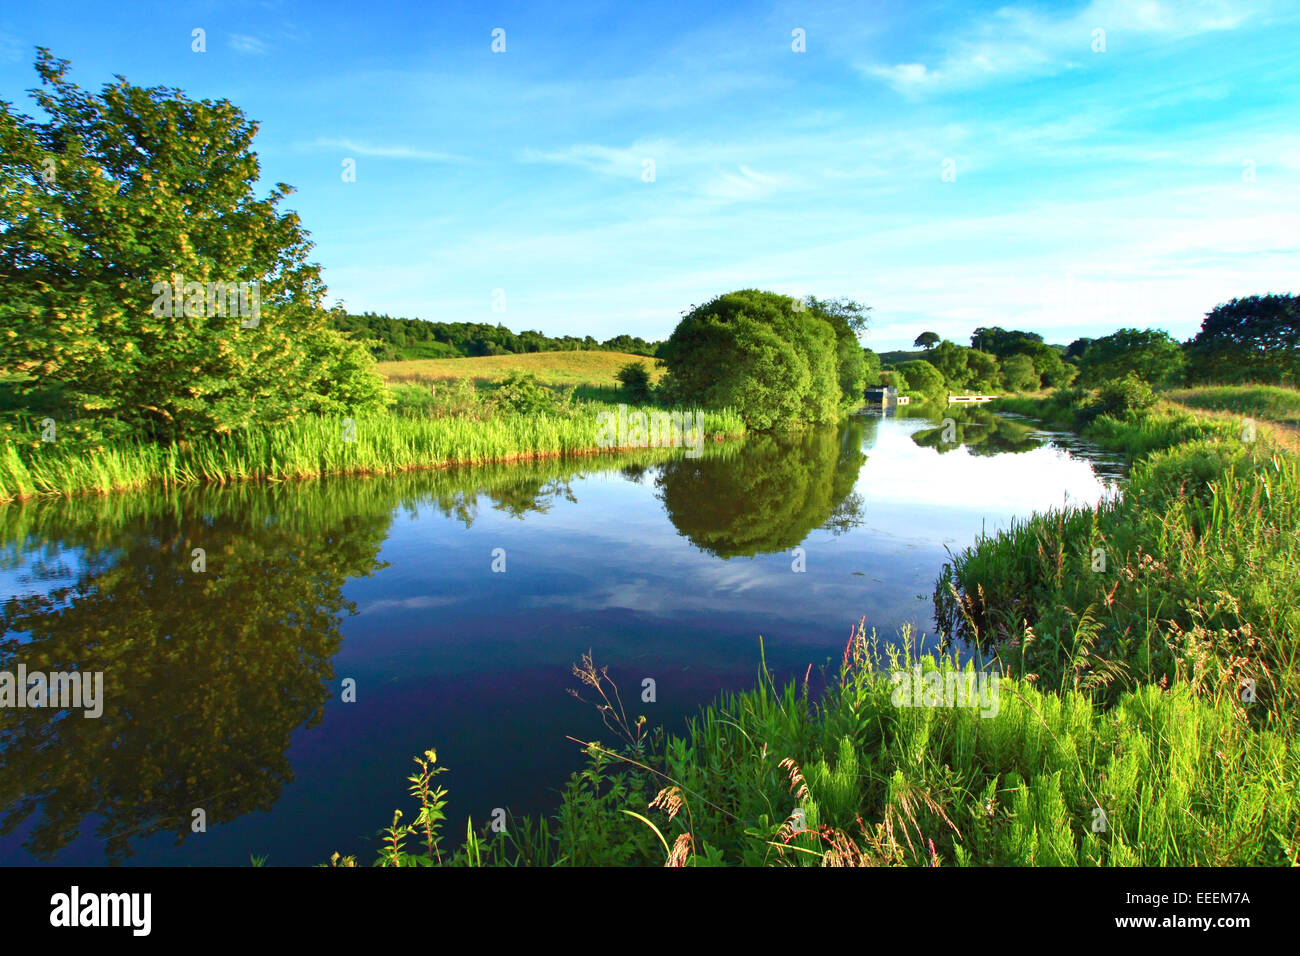 Forth and Clyde Canal, walking path, Kilsith, North Lanarkshire, Scotland - Stock Image